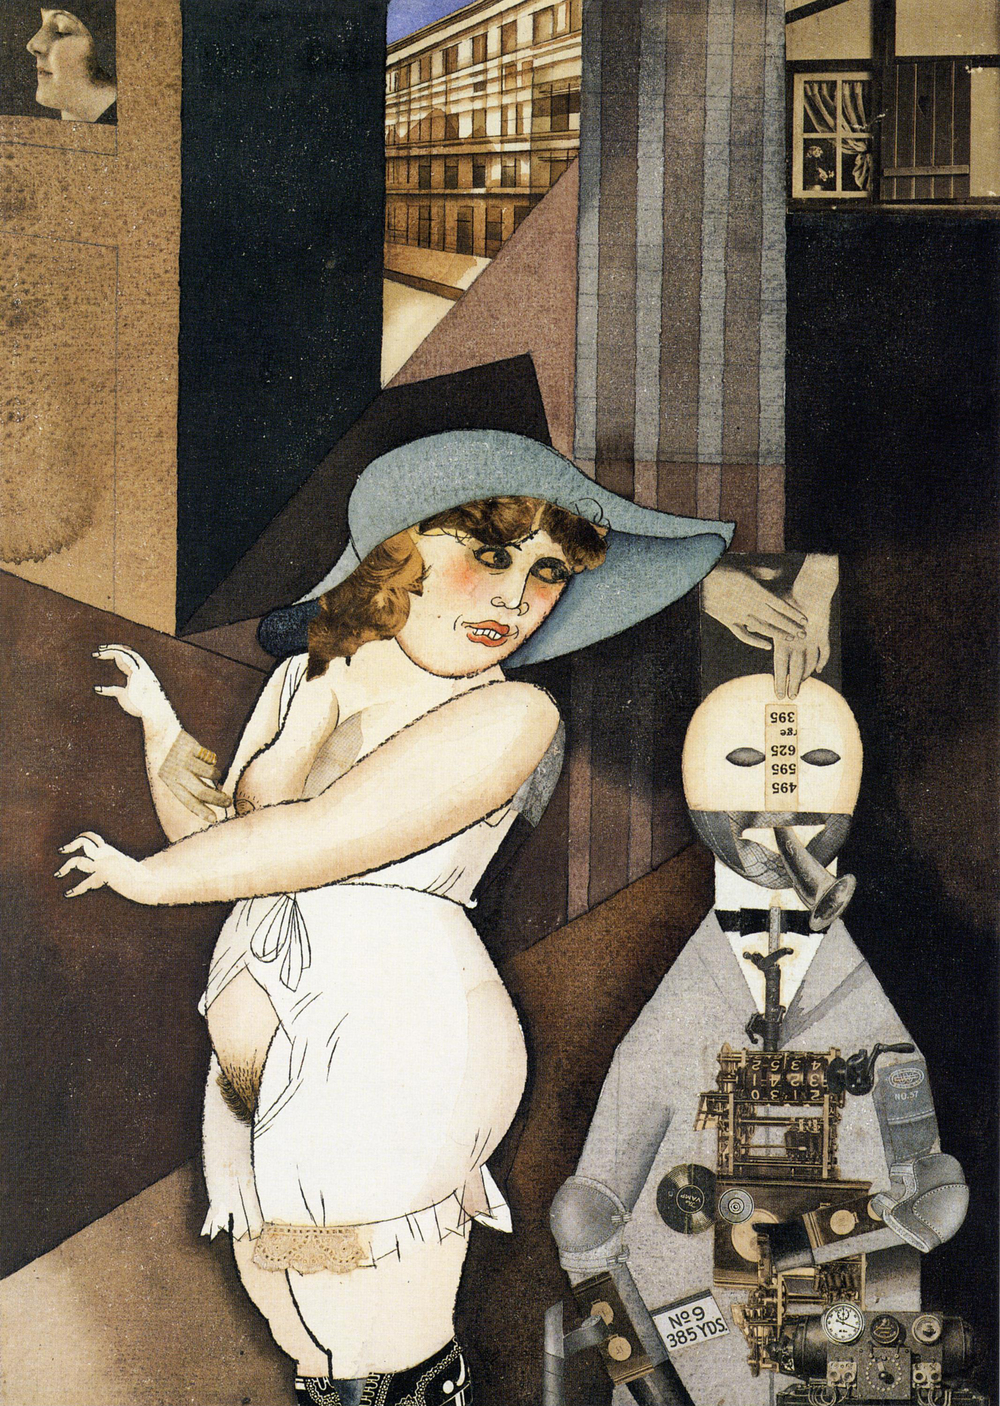 George Grosz, Daum marries her pedantic automaton George in May 1920, John Heartfield is very glad of it, 1920, Berlinische Galerie.